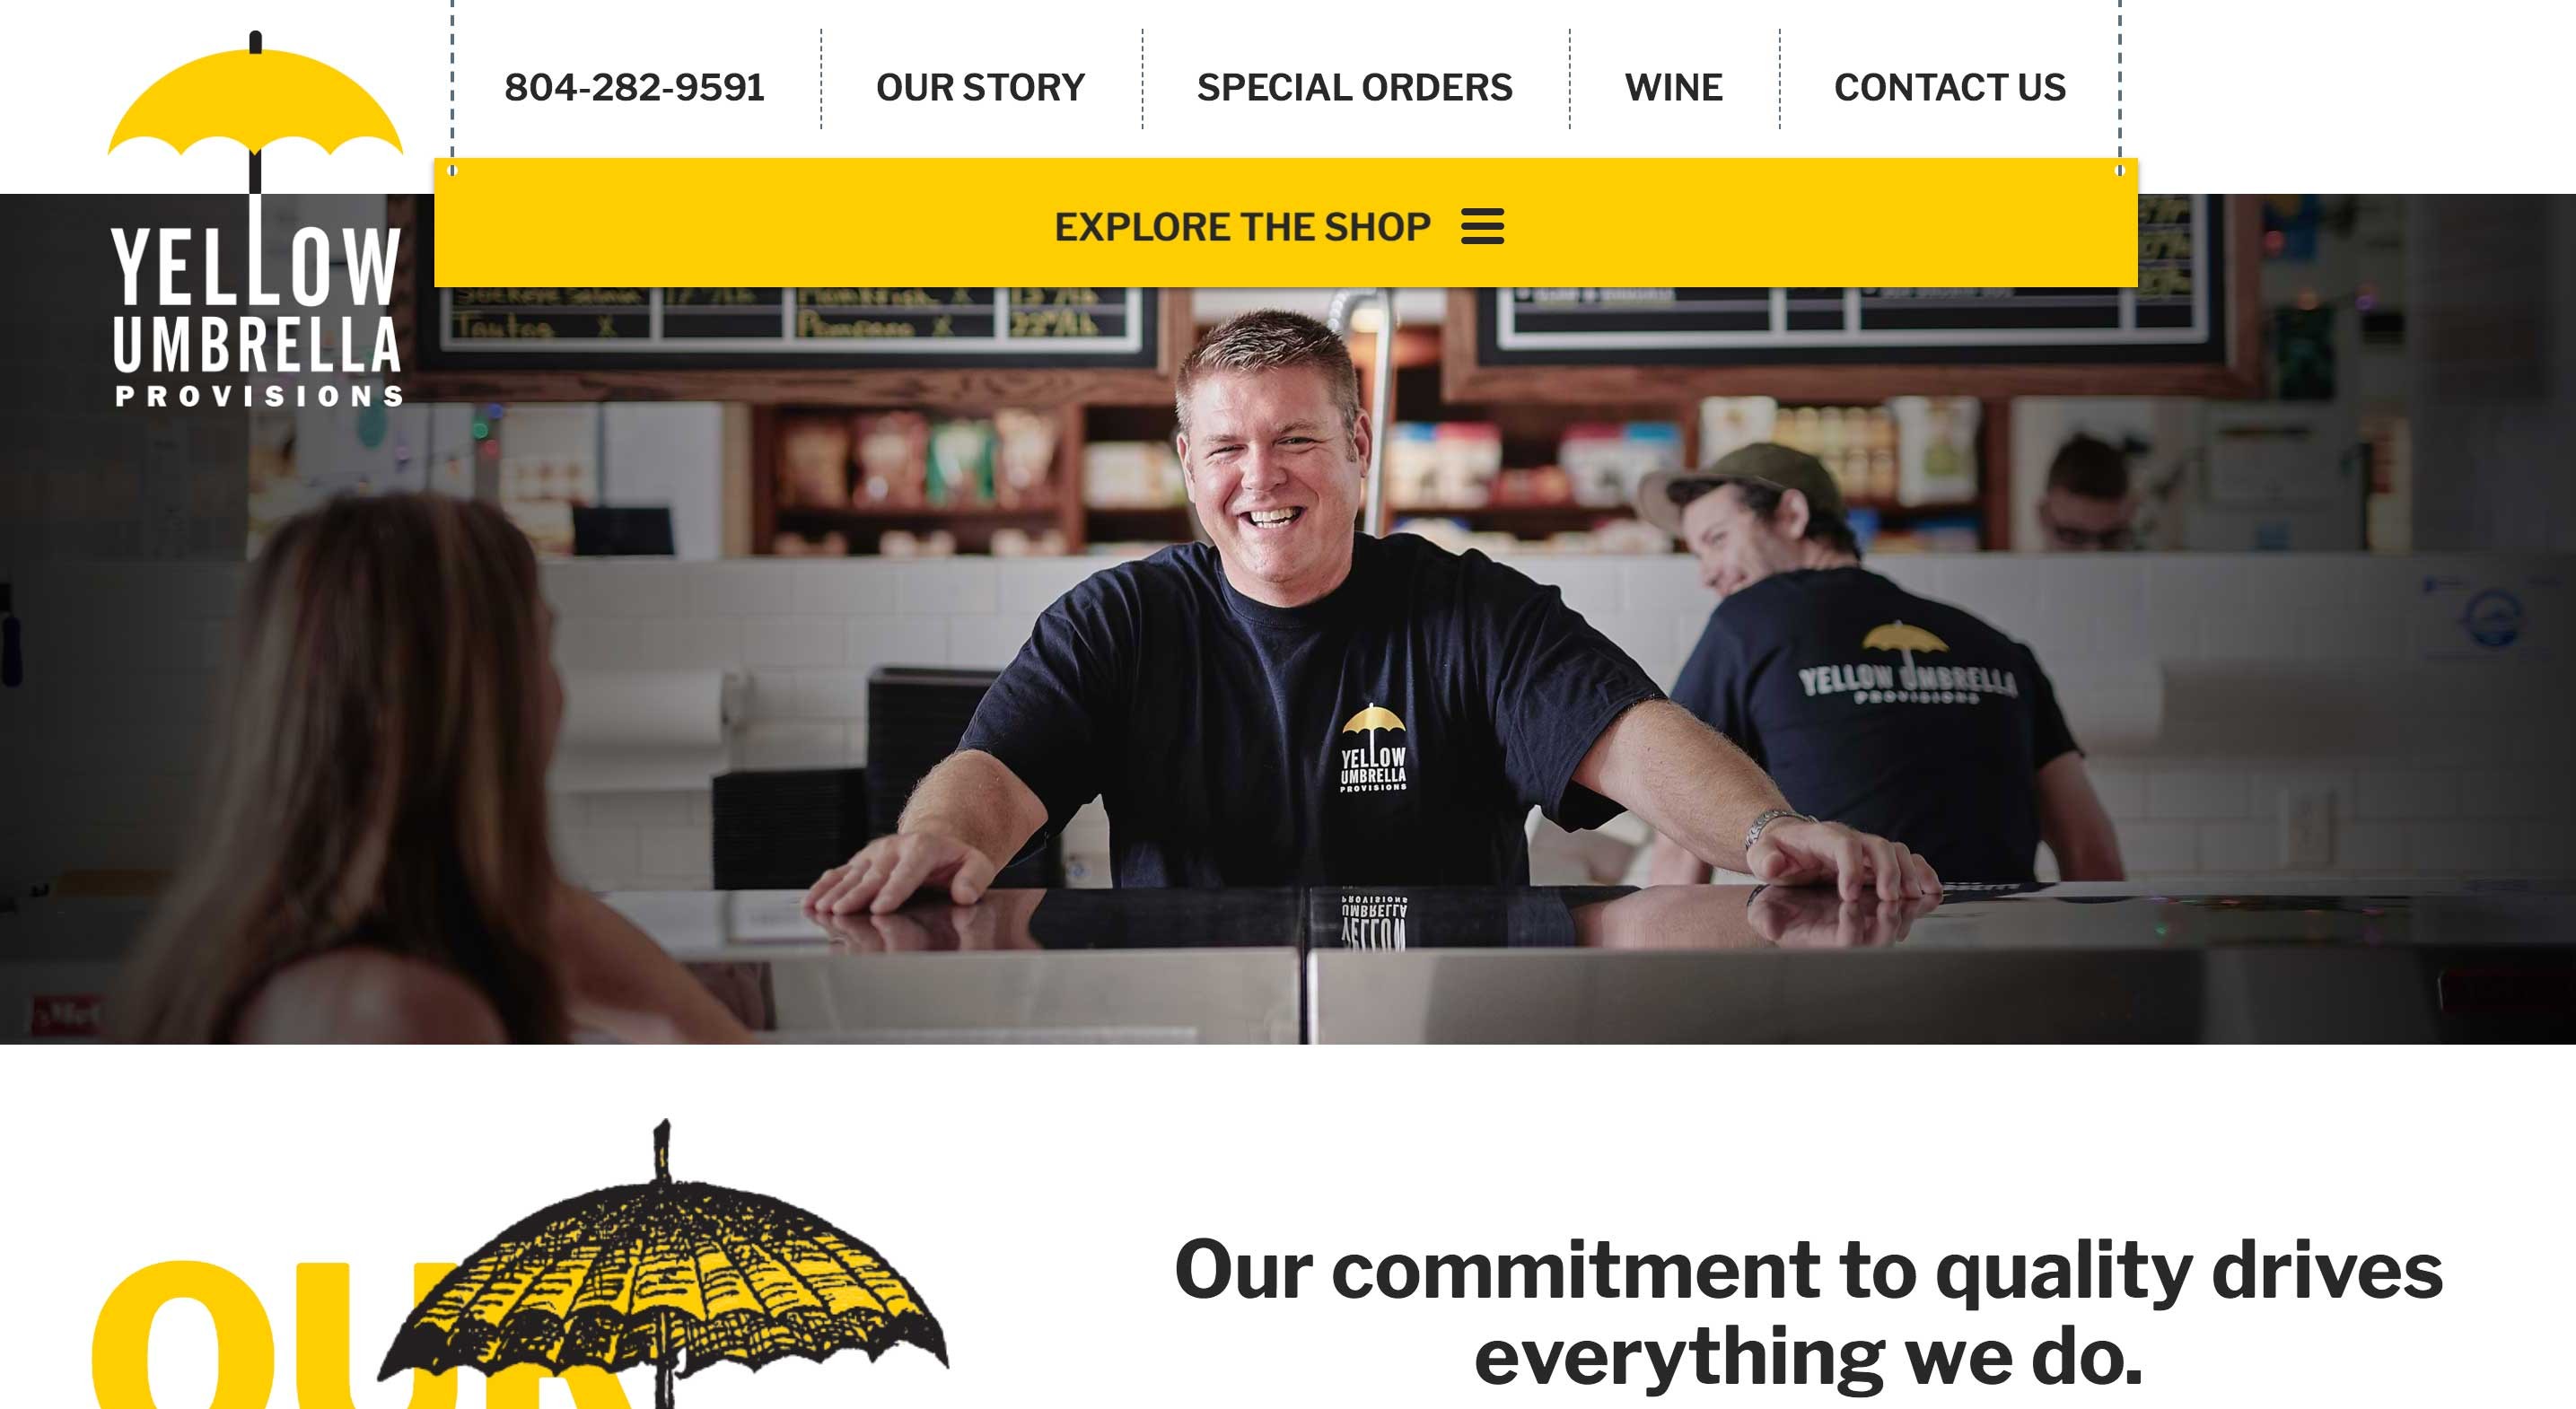 A man standing behind the counter of the Yellow Umbrella shop smiles as a customer approaches